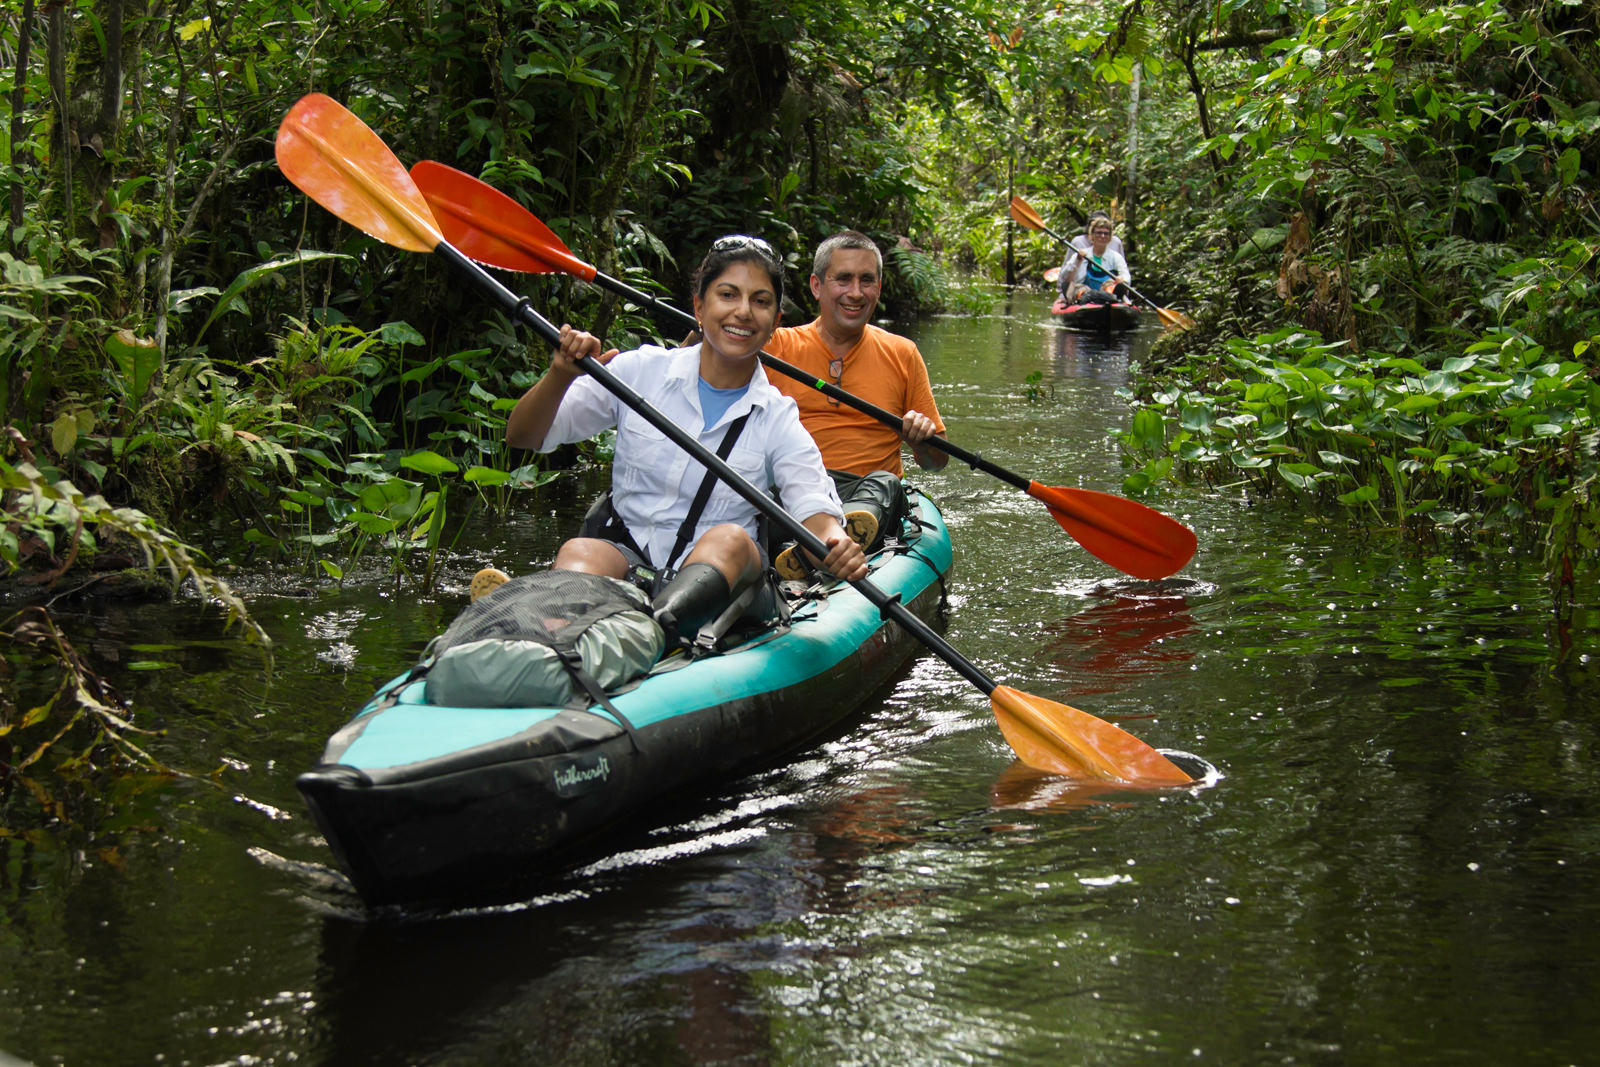 Amazon kayaking trip participants exploring tributary stream